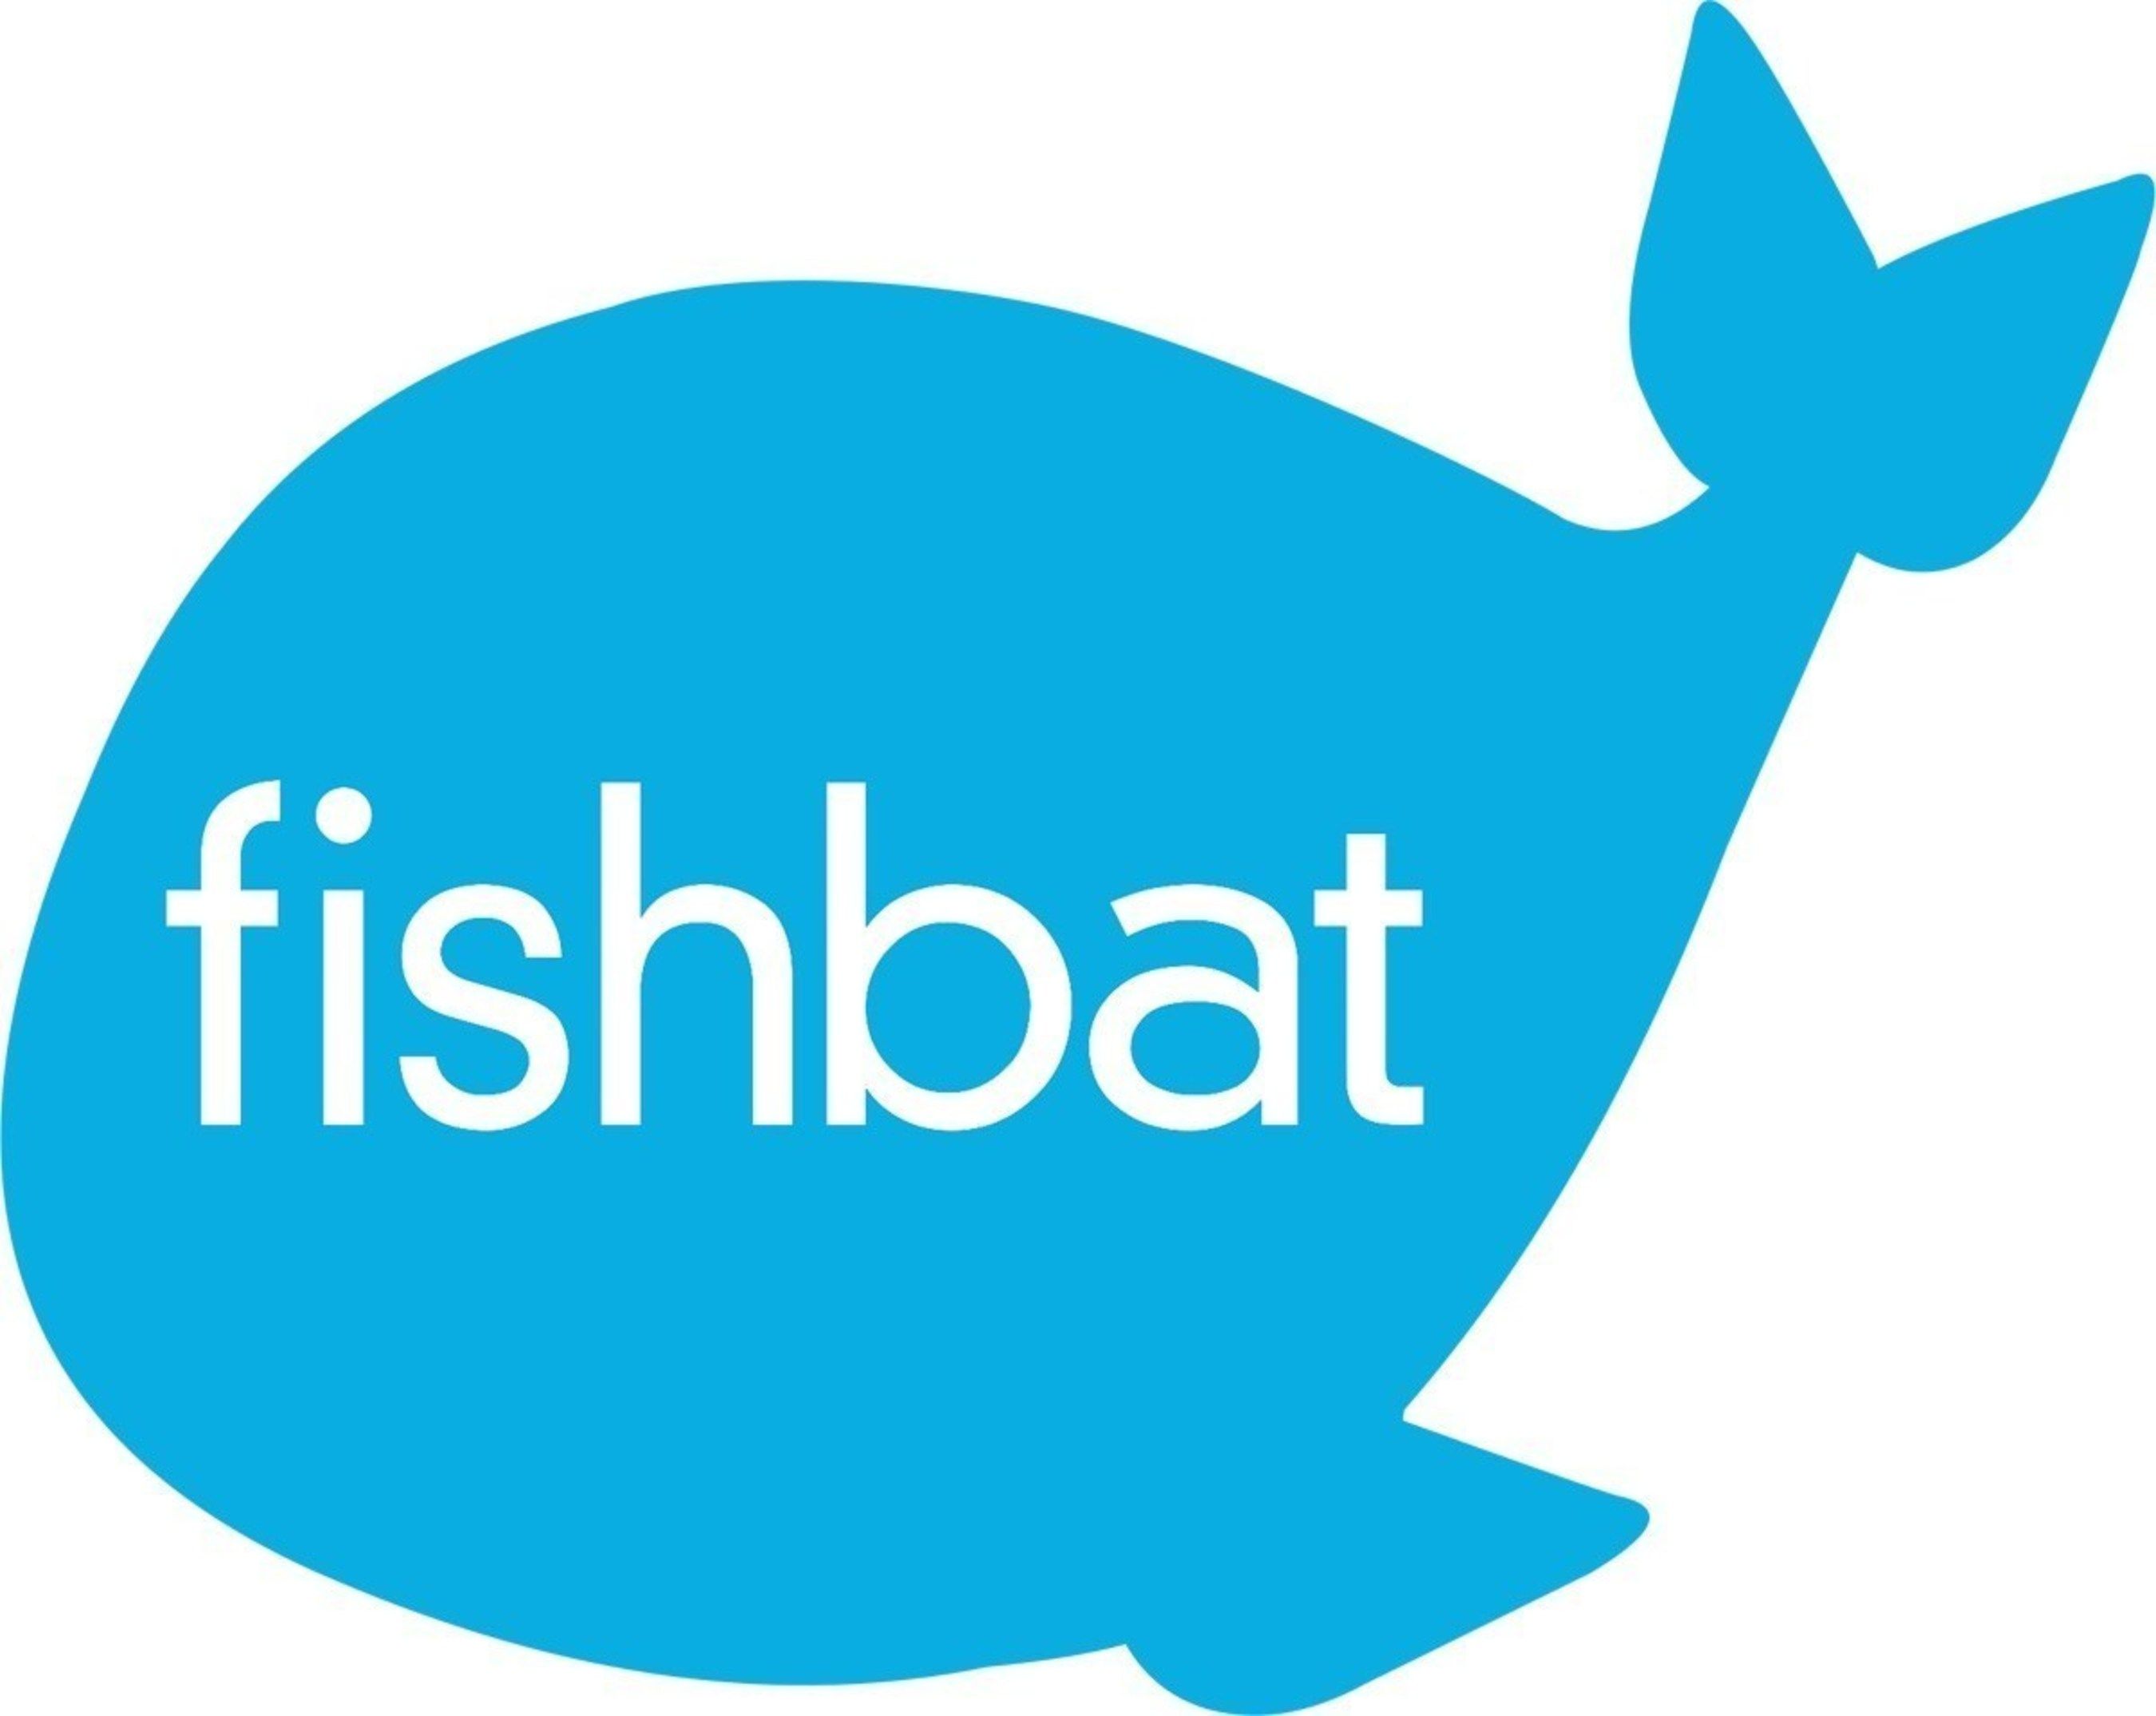 fishbat CMO Jennifer Calise Discusses 3 Reasons Why You Should Talk to Your Customers